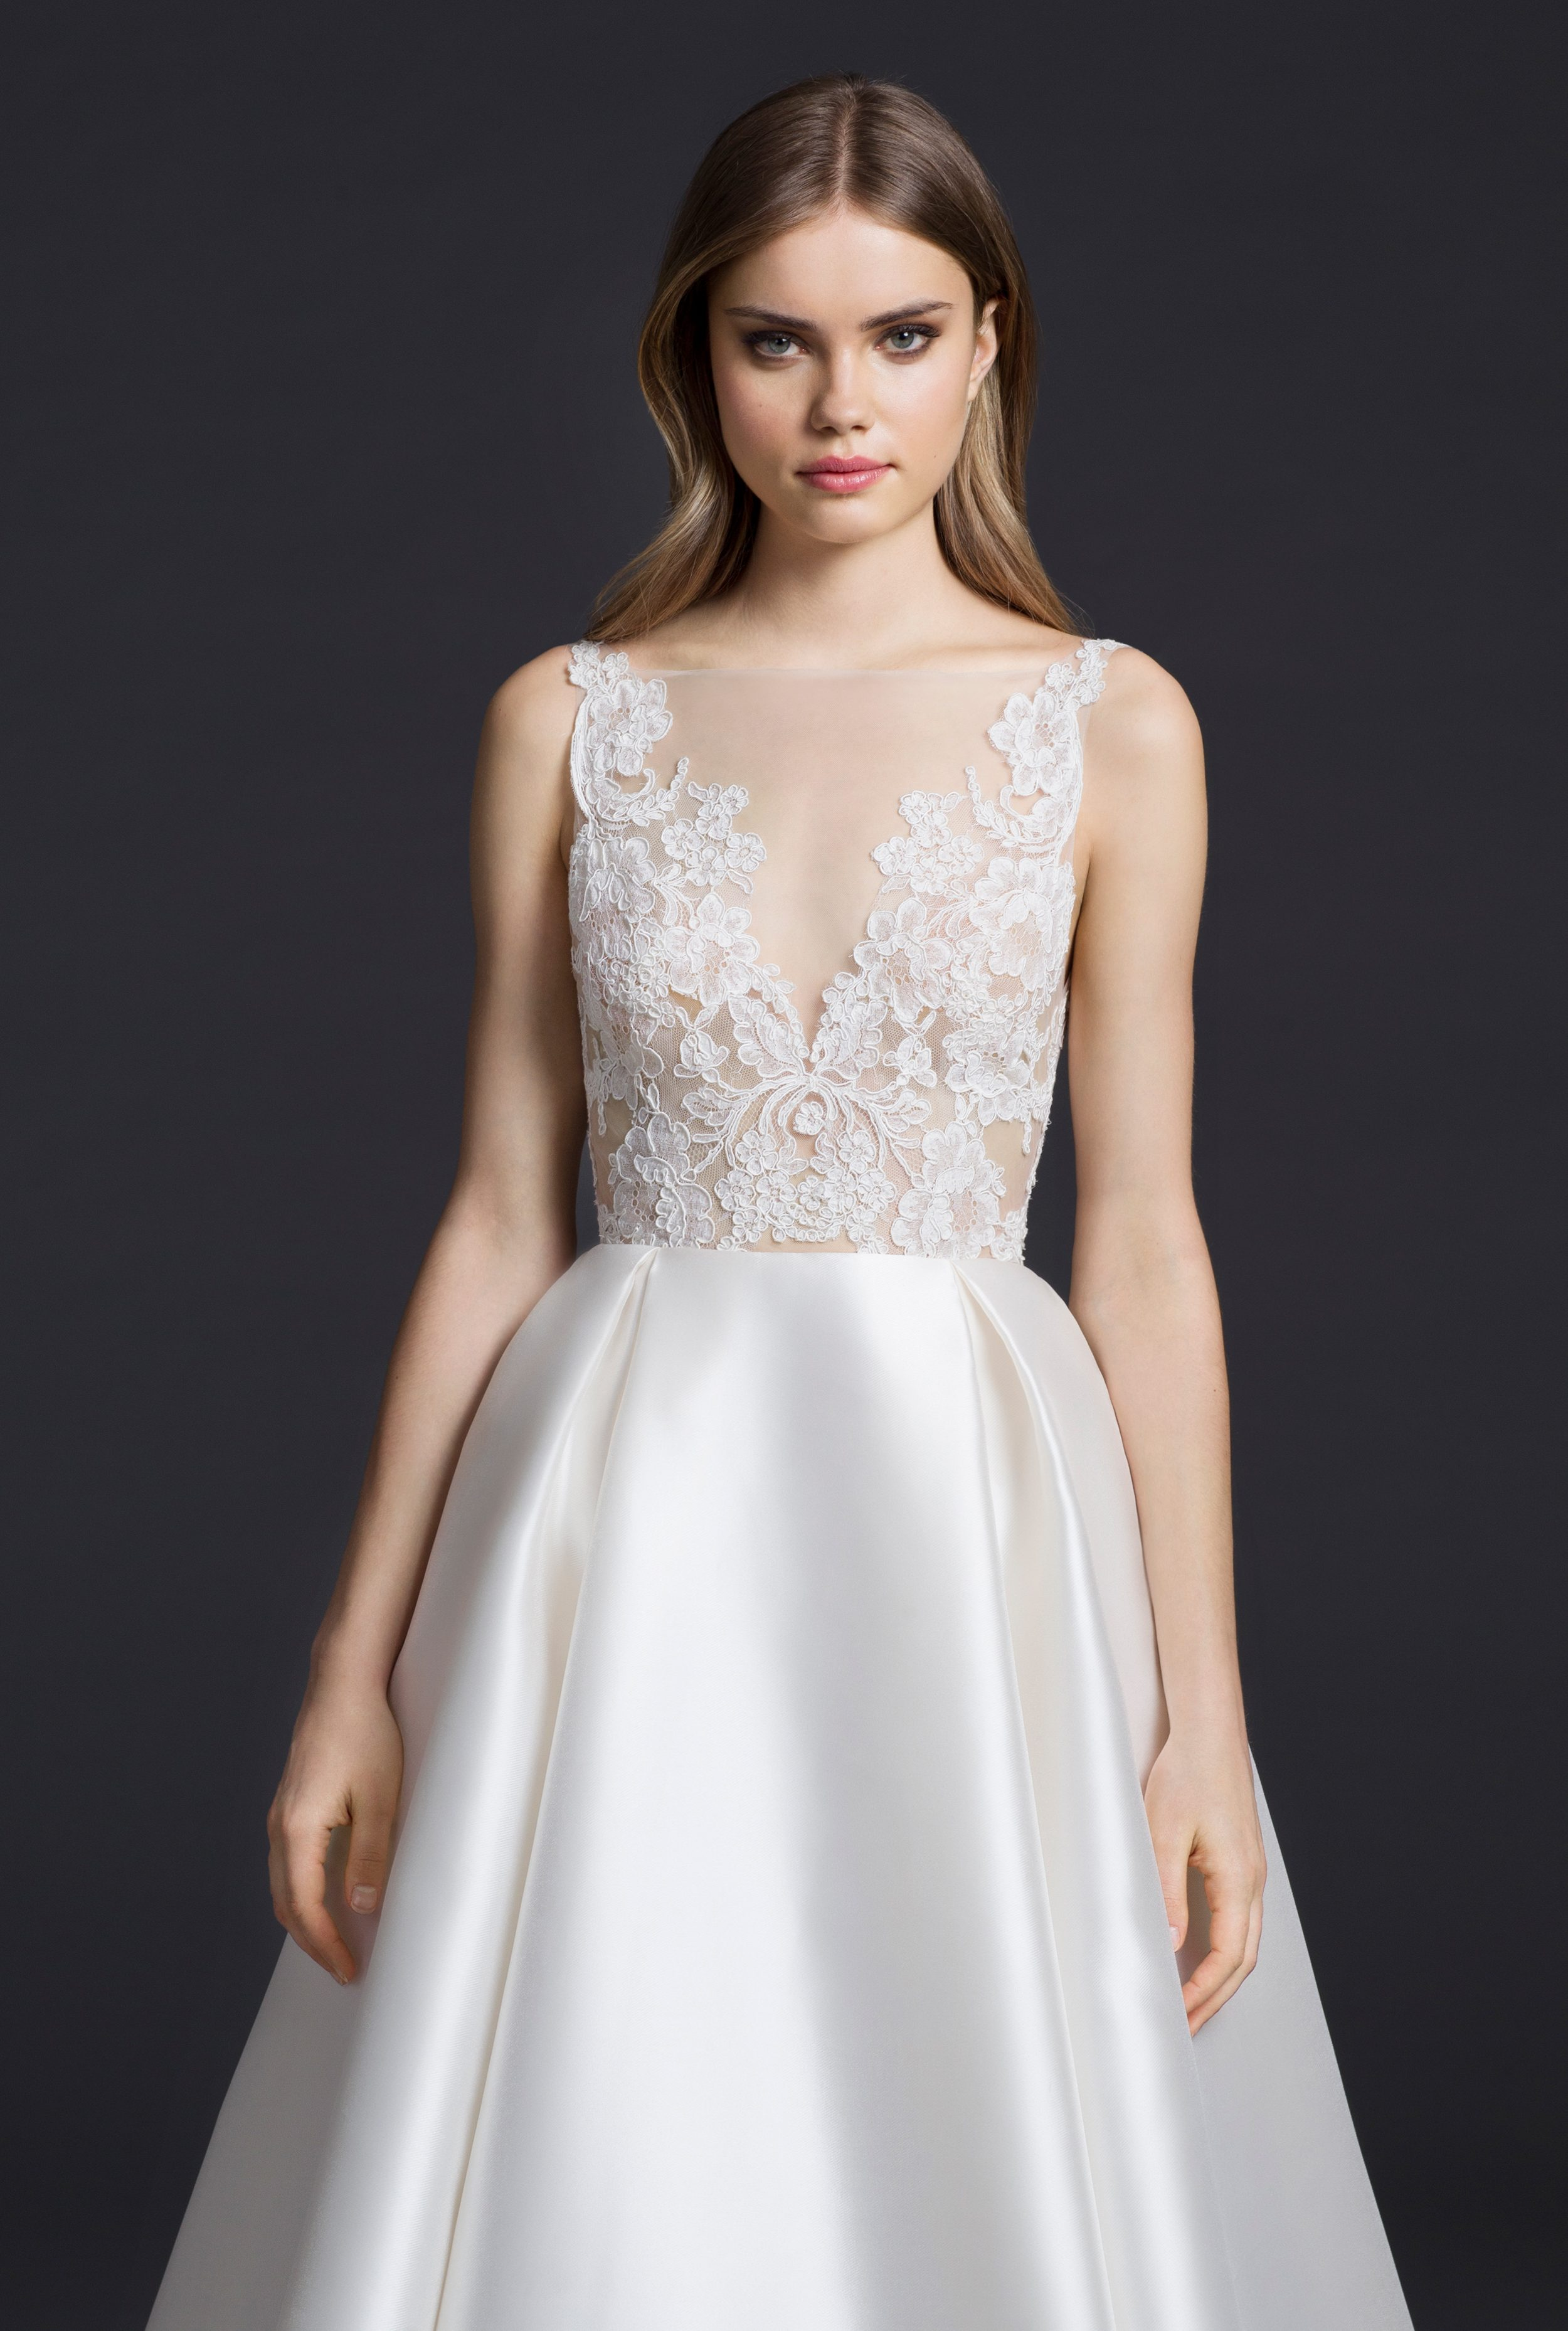 New Wedding Gowns From Lazaro Arrive At StarDust